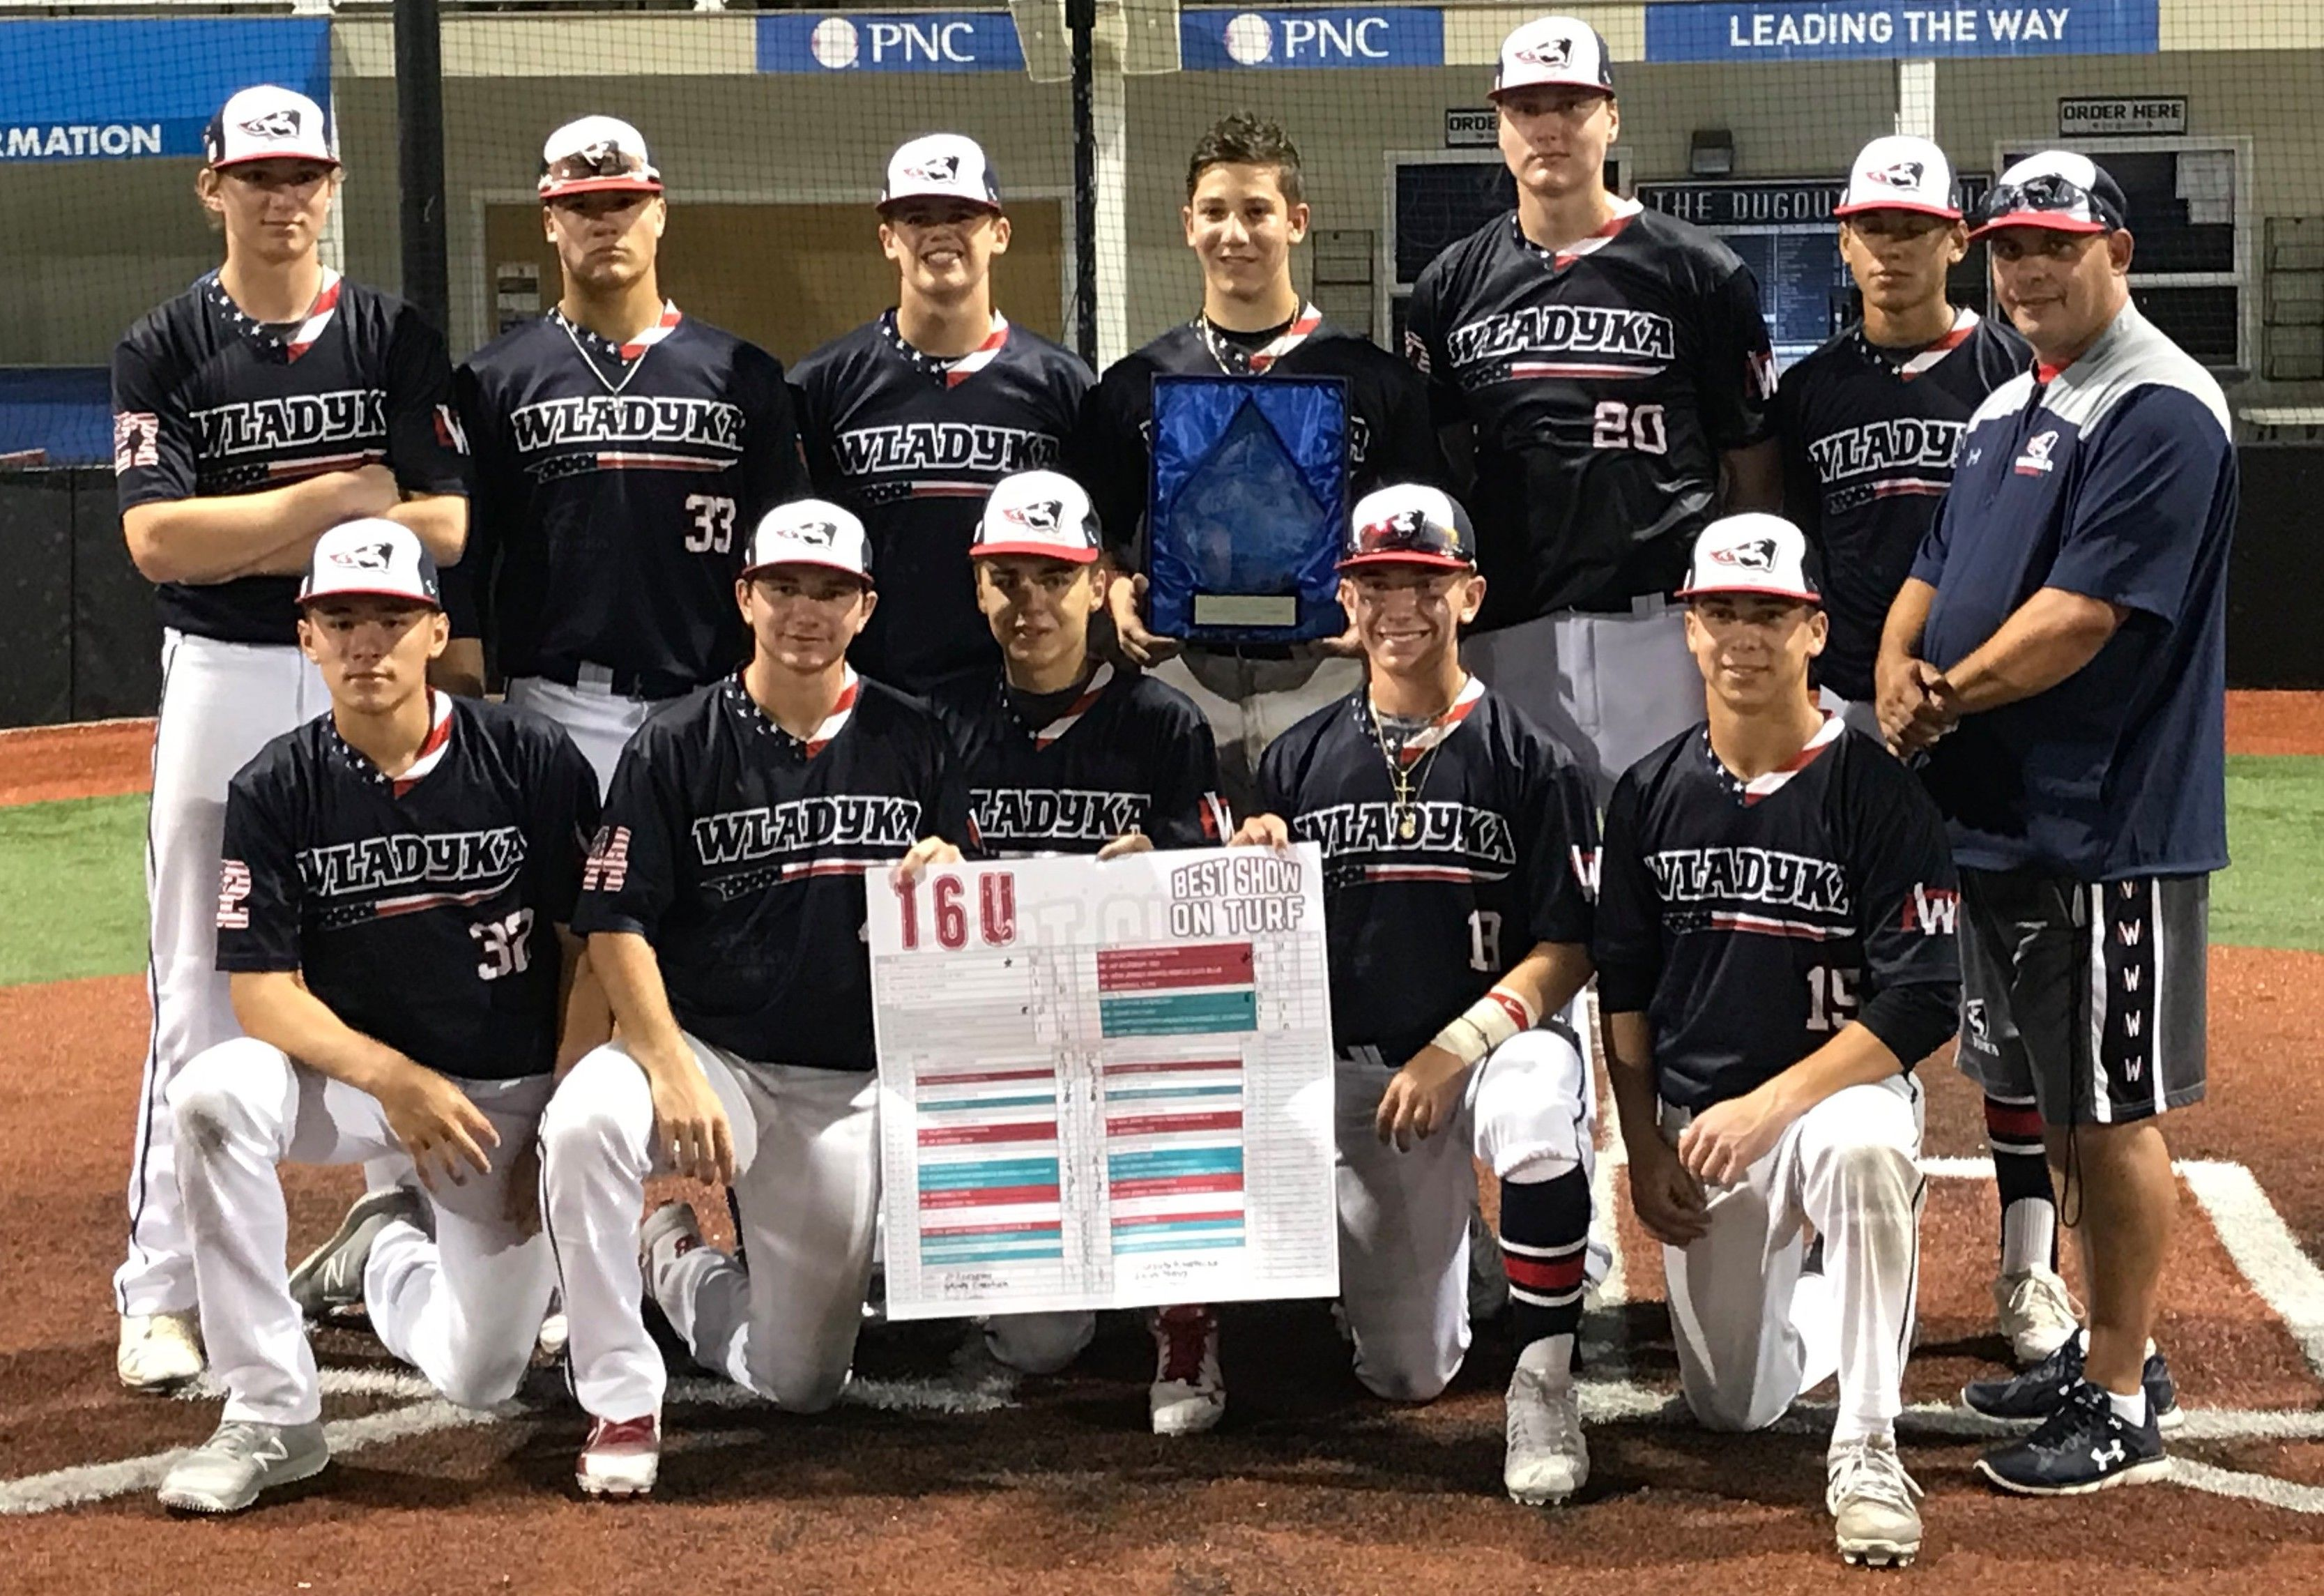 Ruggieri arm, Wladyka bats too much for CT Grind in Turf final